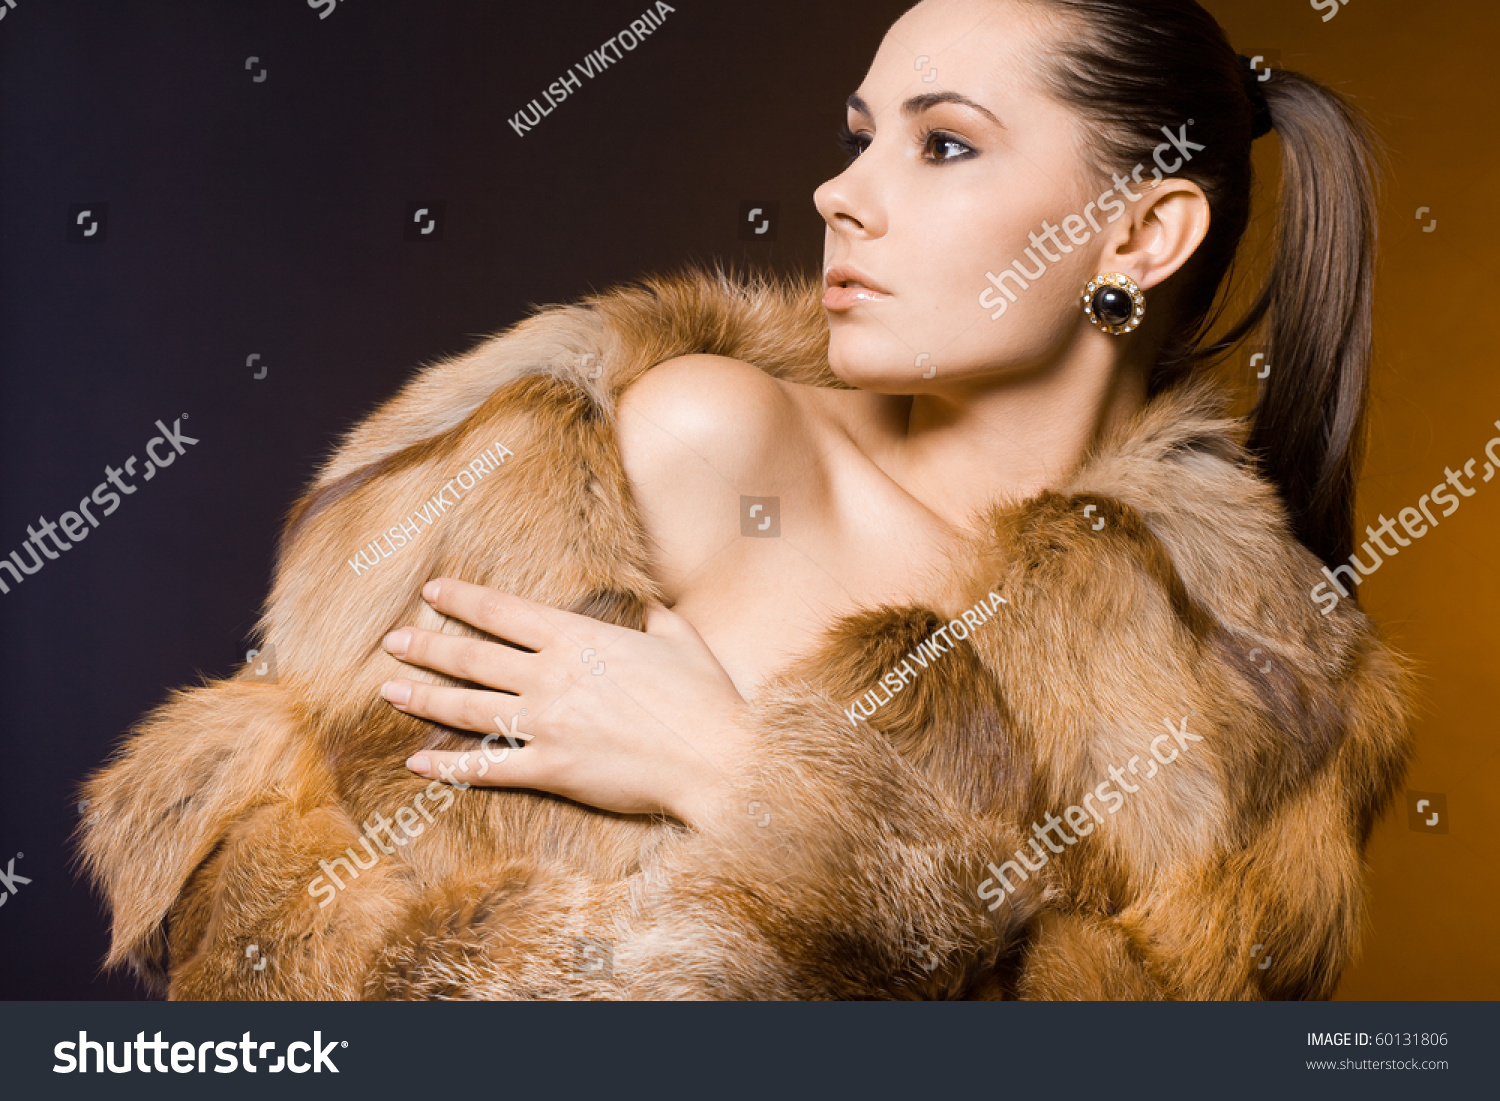 Beautiful Woman Fur Coat Stock Photo 60131806 - Shutterstock